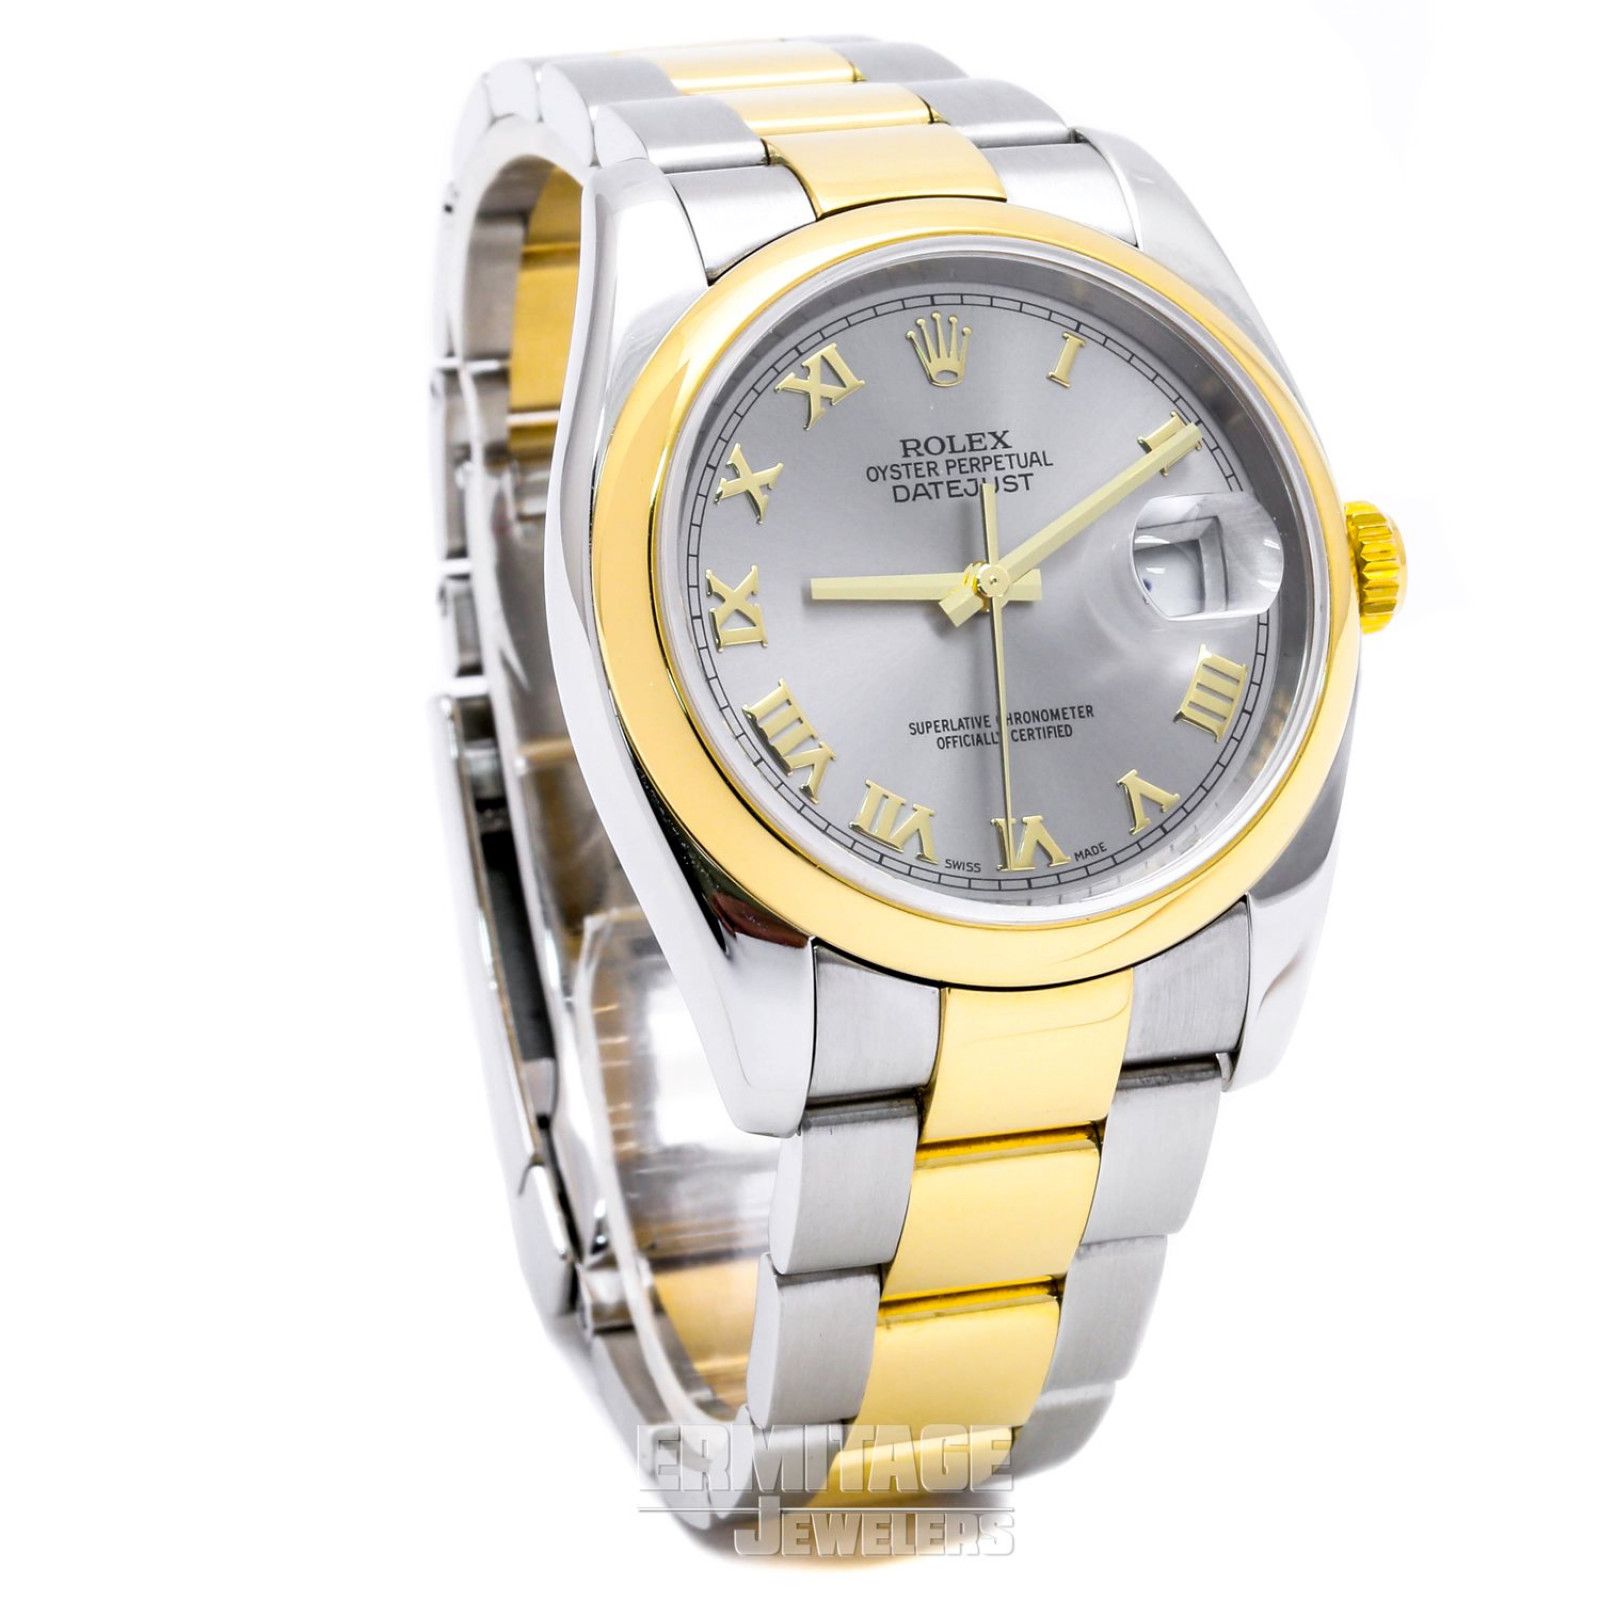 Rolex Datejust 116203 with Gray Dial